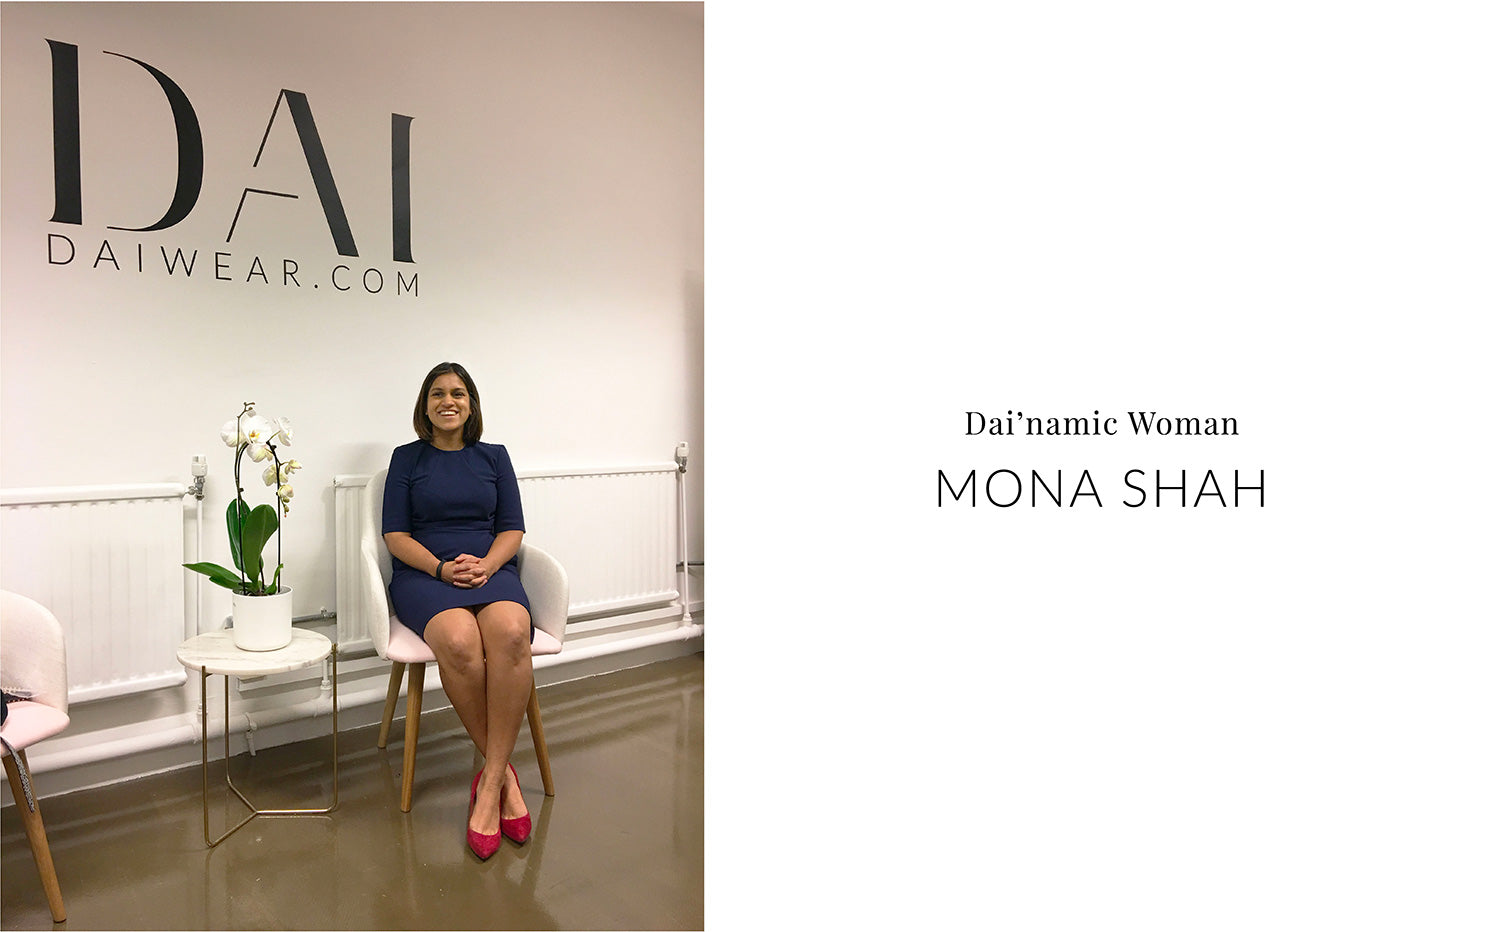 Dai'namic Woman: Mona Shah